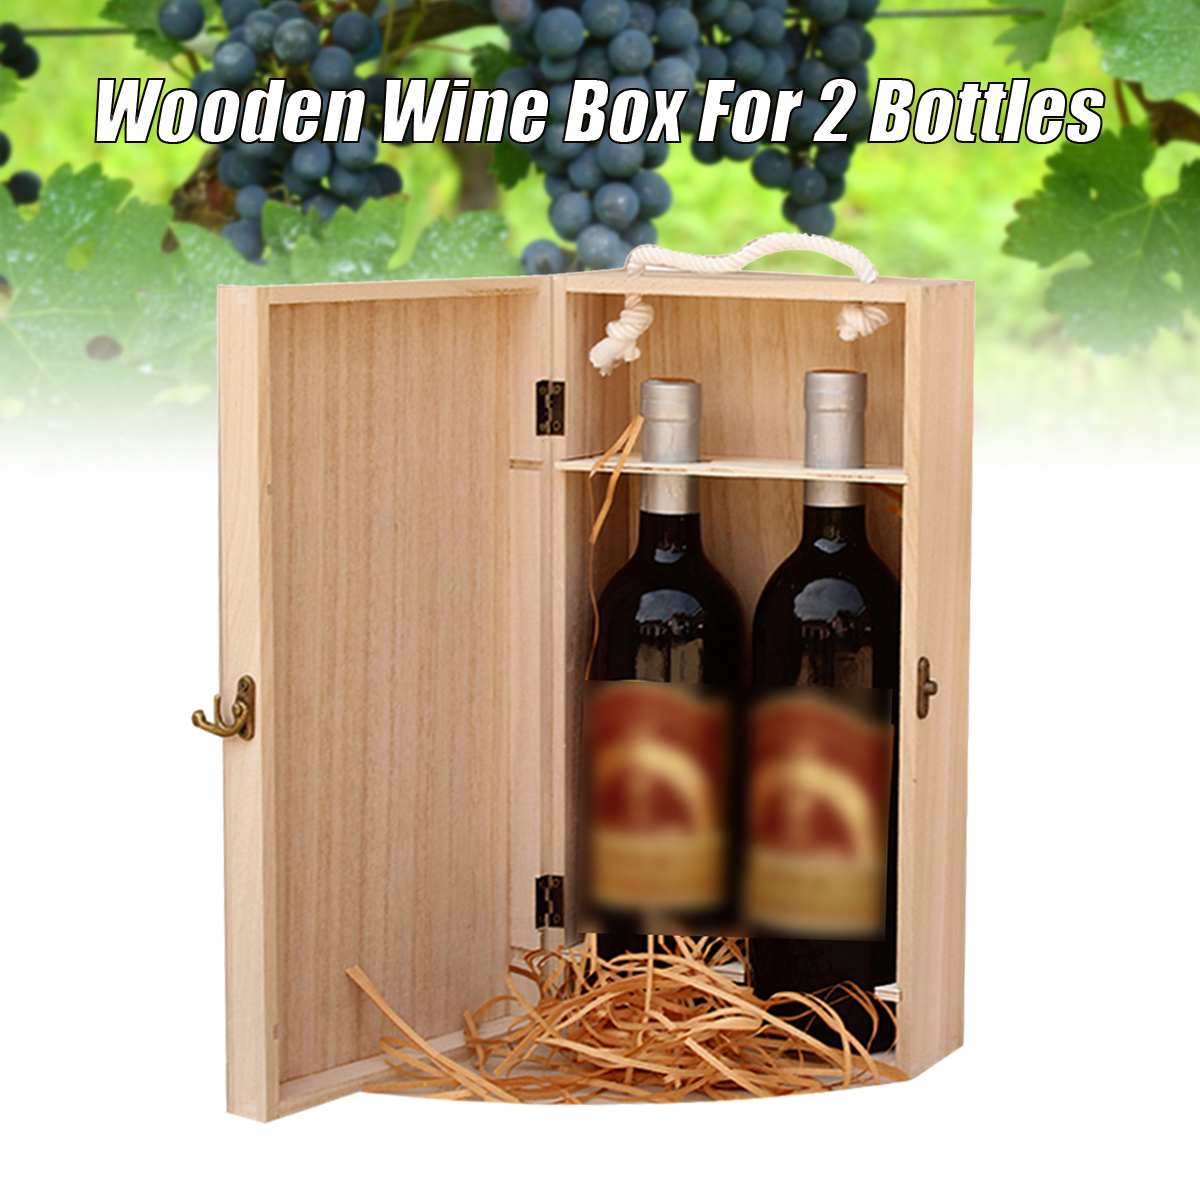 Vintage Natural Wood 2 Red Wine Bottle Box Carrier Crate Case Carrying Display Packing Holder Birthday Party Gift 35*19*10cm